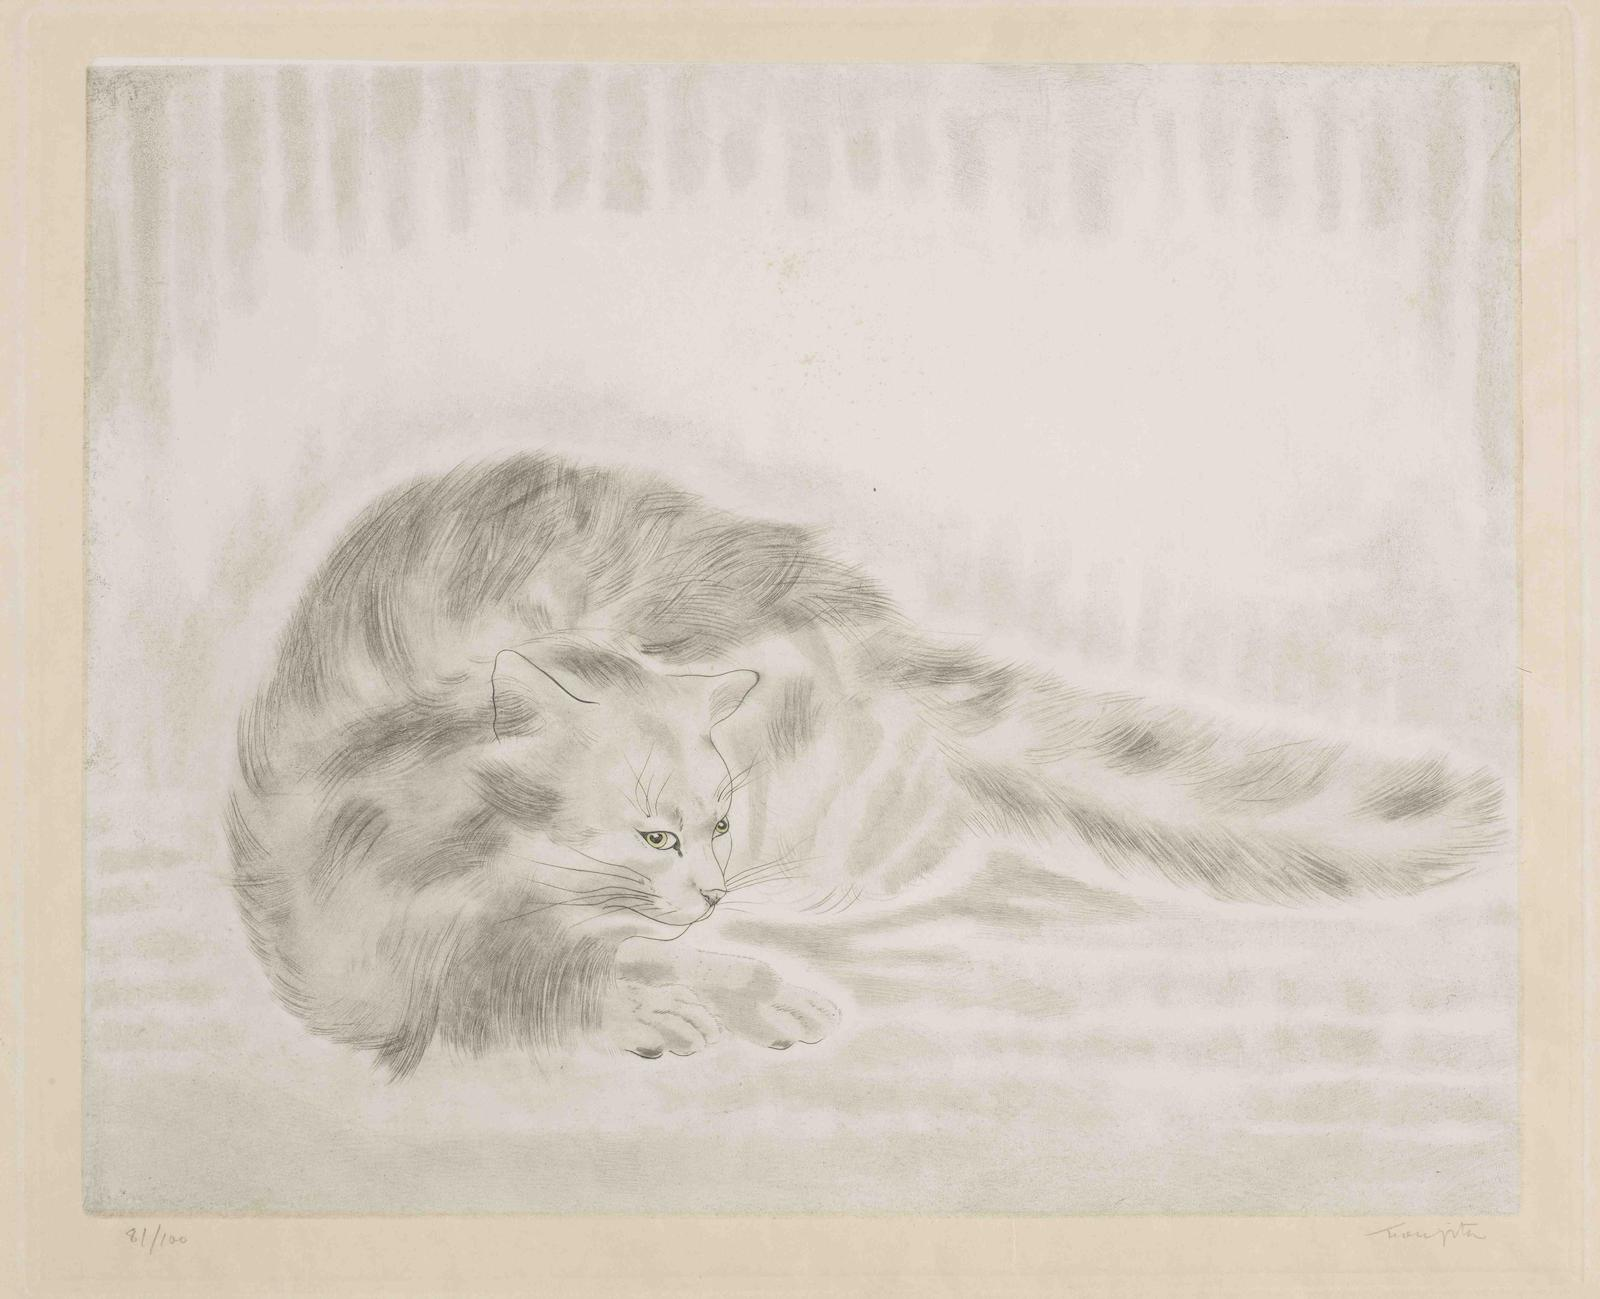 Tsuguharu Foujita-Fluffy Cat Lying Down, from Les Chats (Buisson 29.200.3)-1930